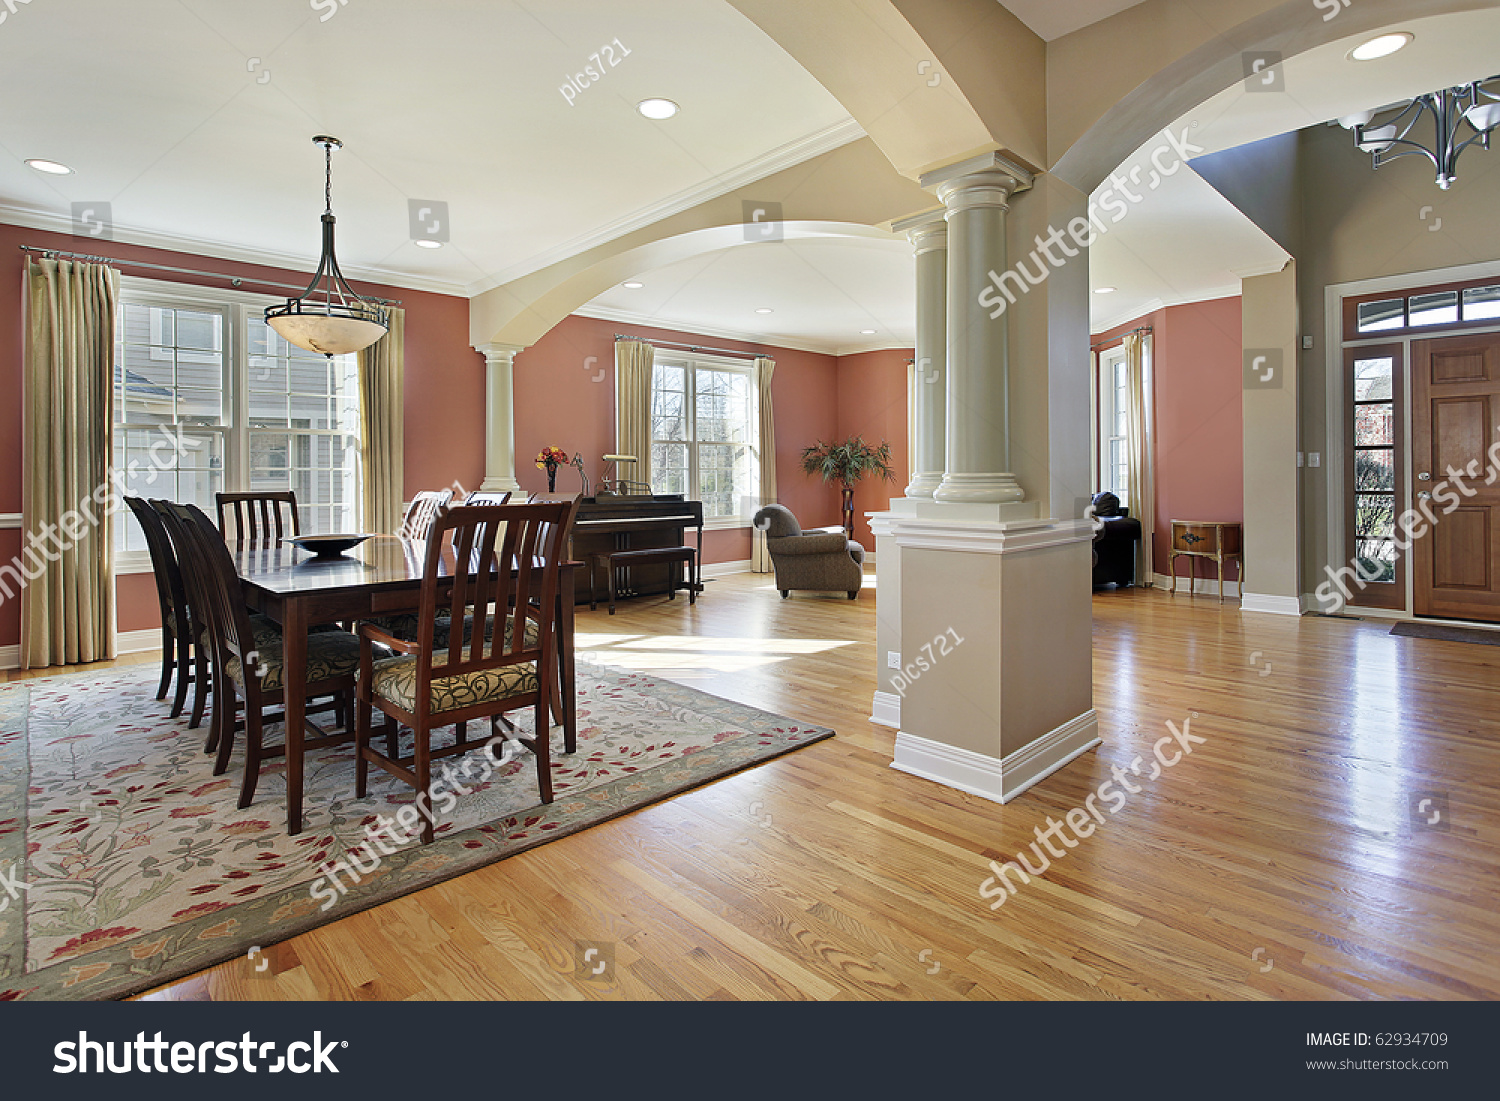 Dining Room In Open Floor Plan With Foyer View Stock Photo ...